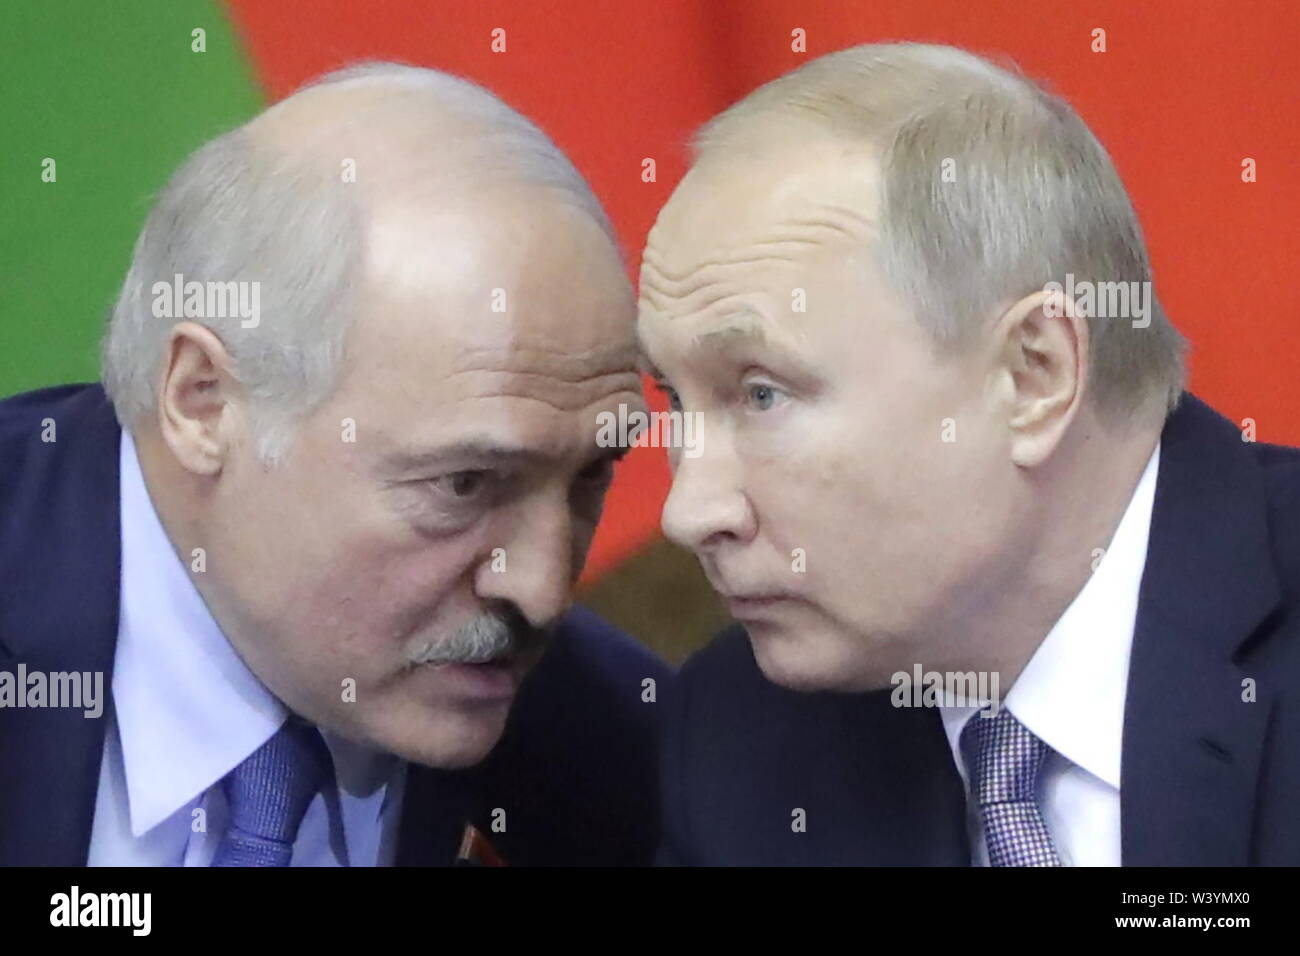 St Petersburg, Russia. 18th July, 2019. ST PETERSBURG, RUSSIA - JULY 18, 2019: Belarus' President Alexander Lukashenko (L) and Russia's President Vladimir Putin attend a plenary meeting at the 6th Belarus-Russia Forum of Regions, Tauride Palace. Mikhail Metzel/TASS Credit: ITAR-TASS News Agency/Alamy Live News - Stock Image